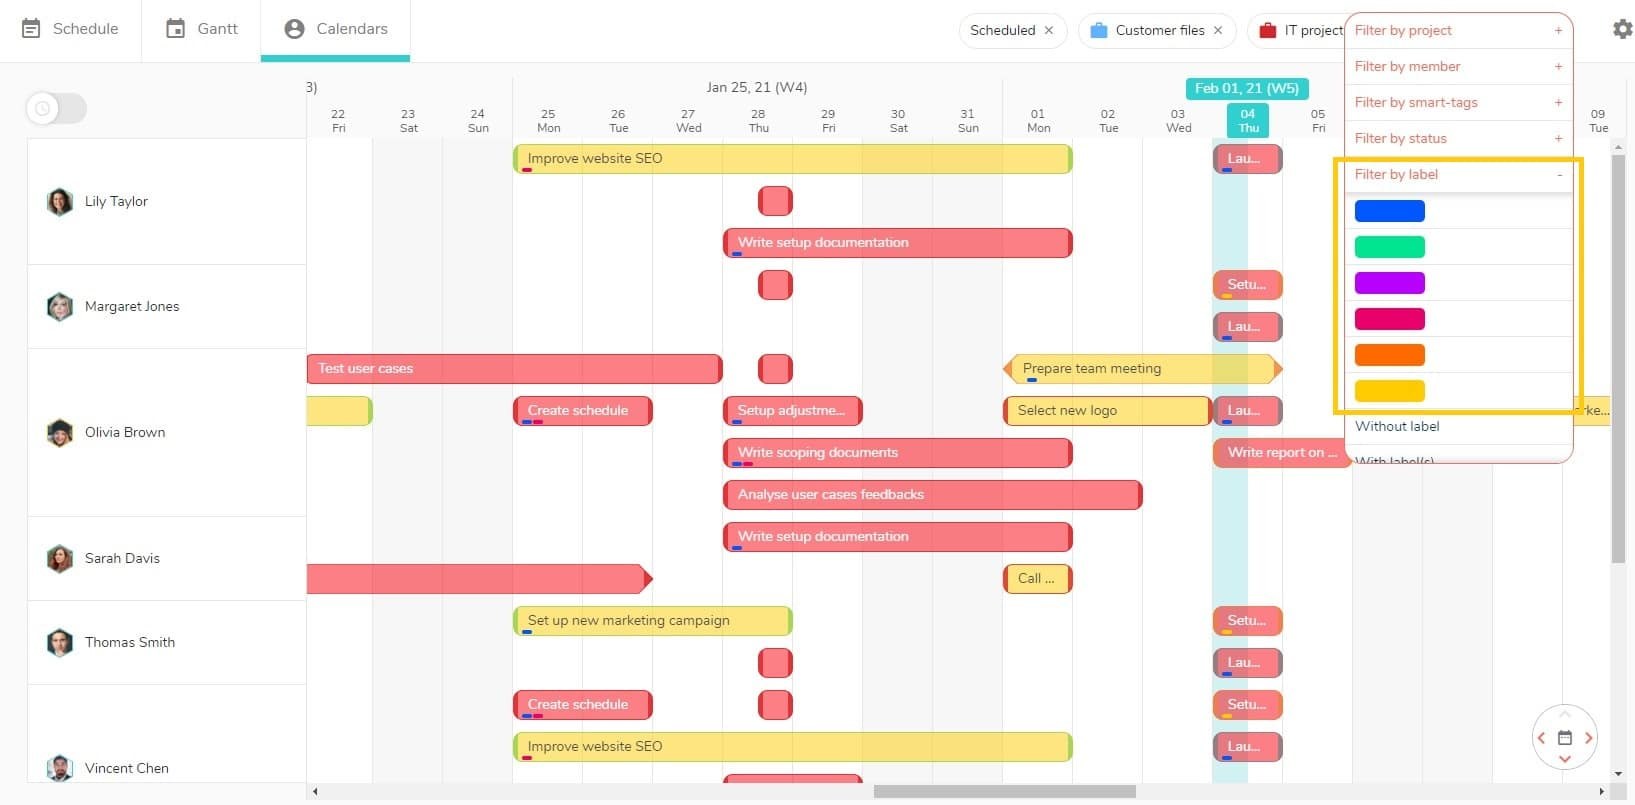 Display the tasks of your projects by labels.